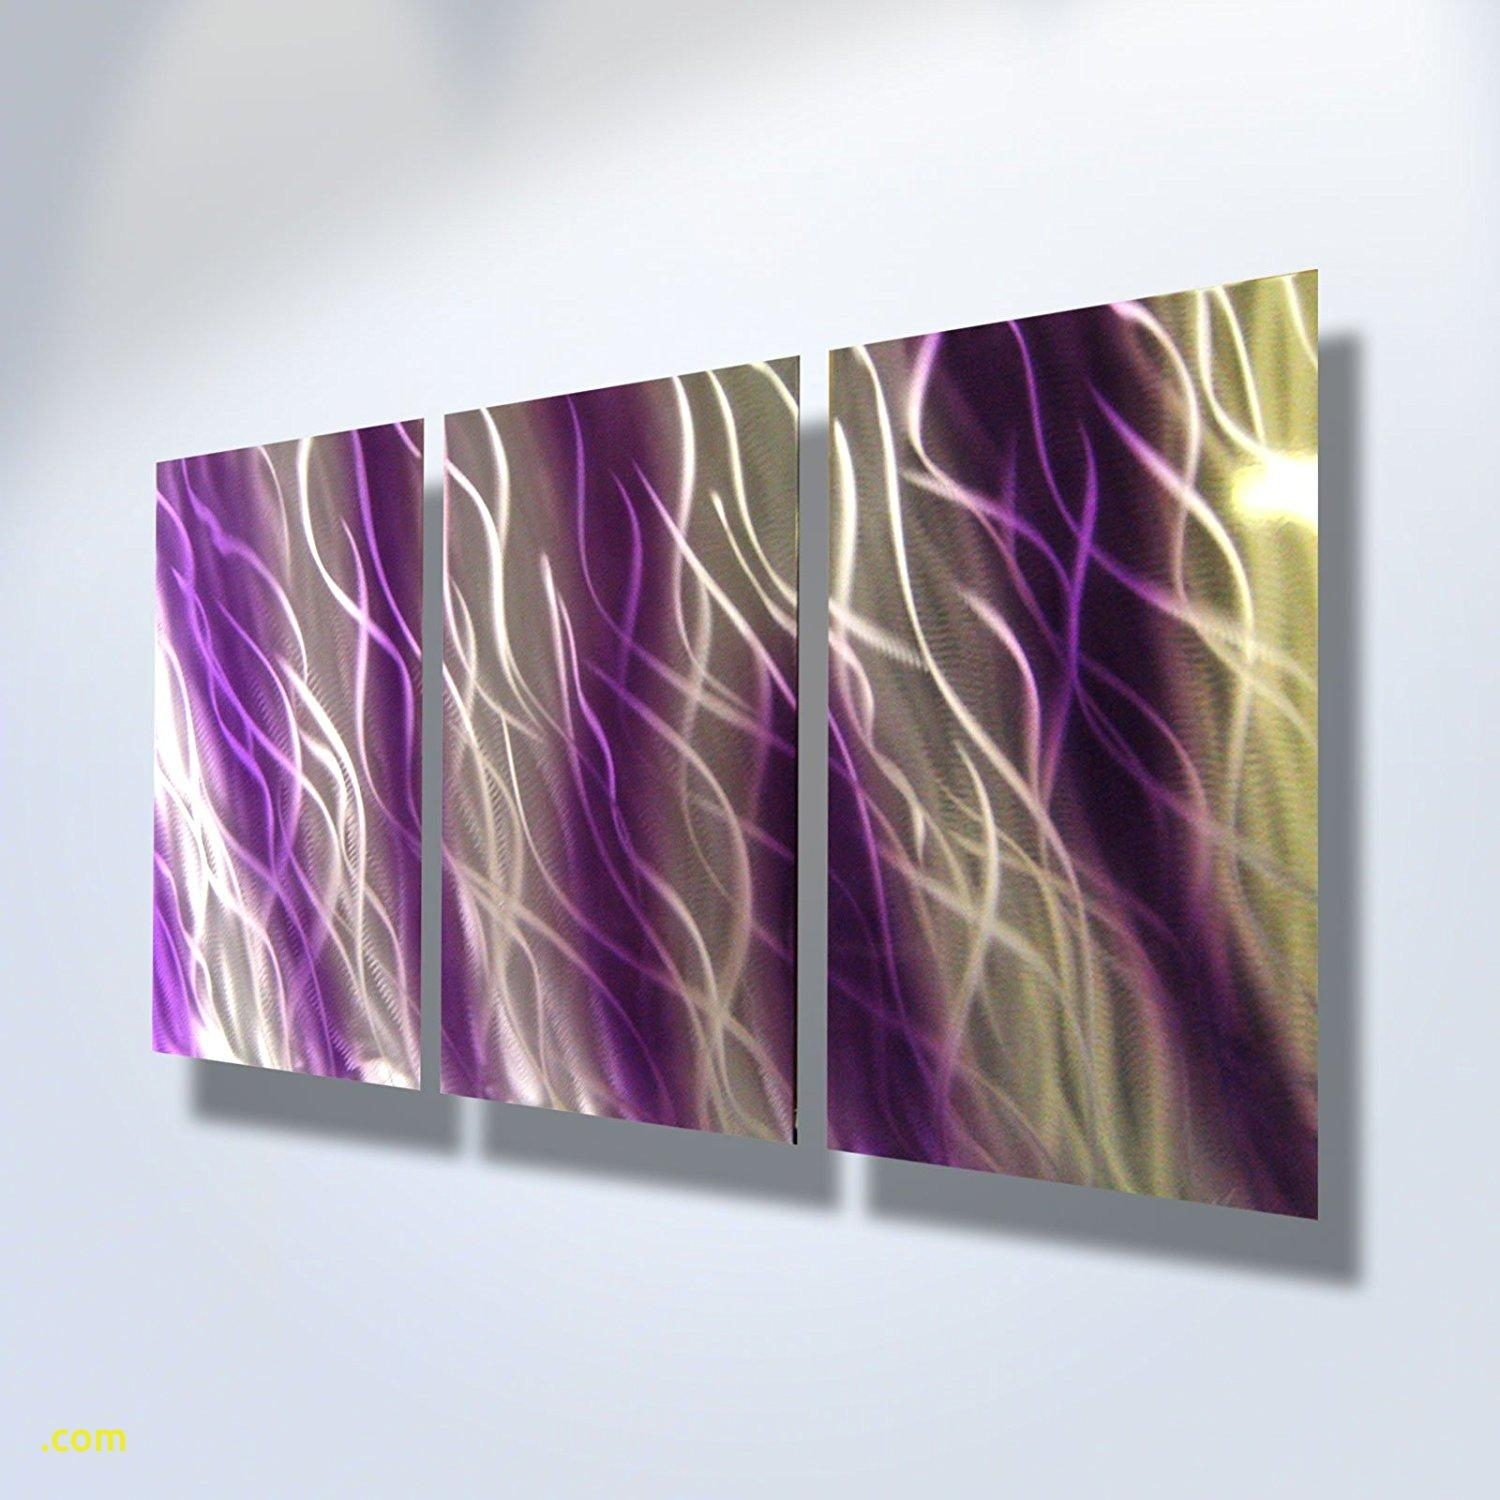 Furniture : Wonderful Cheap Modern Metal Wall Sculpture Luxury In Most Up To Date Inexpensive Abstract Metal Wall Art (View 12 of 20)